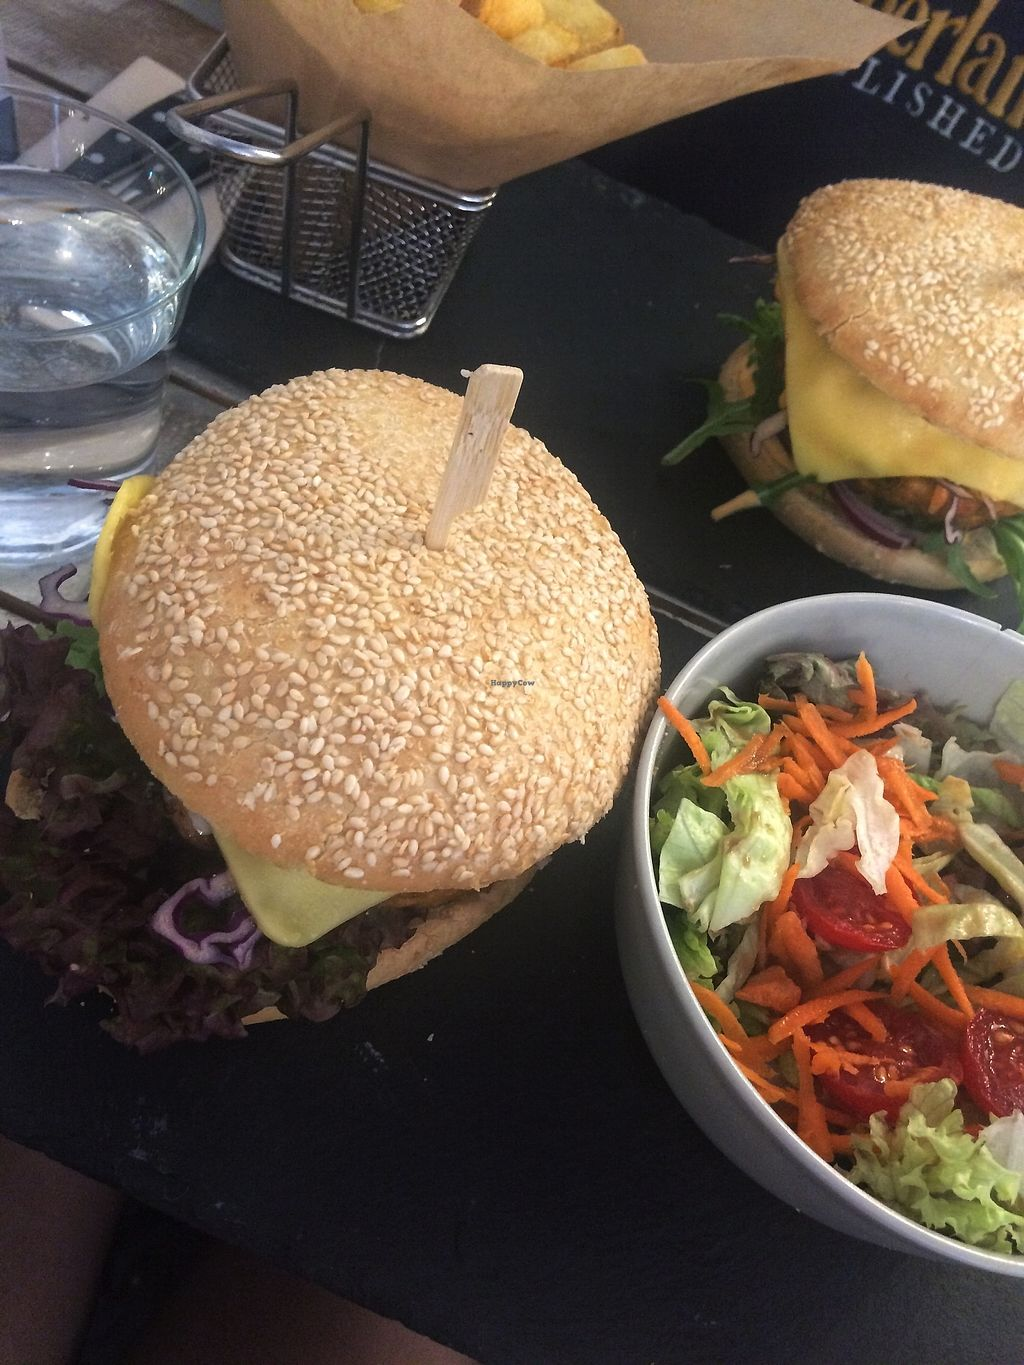 """Photo of Veggiezz - Opernring  by <a href=""""/members/profile/siderealfire"""">siderealfire</a> <br/>Farmers burger with side salad <br/> April 19, 2018  - <a href='/contact/abuse/image/96634/388011'>Report</a>"""